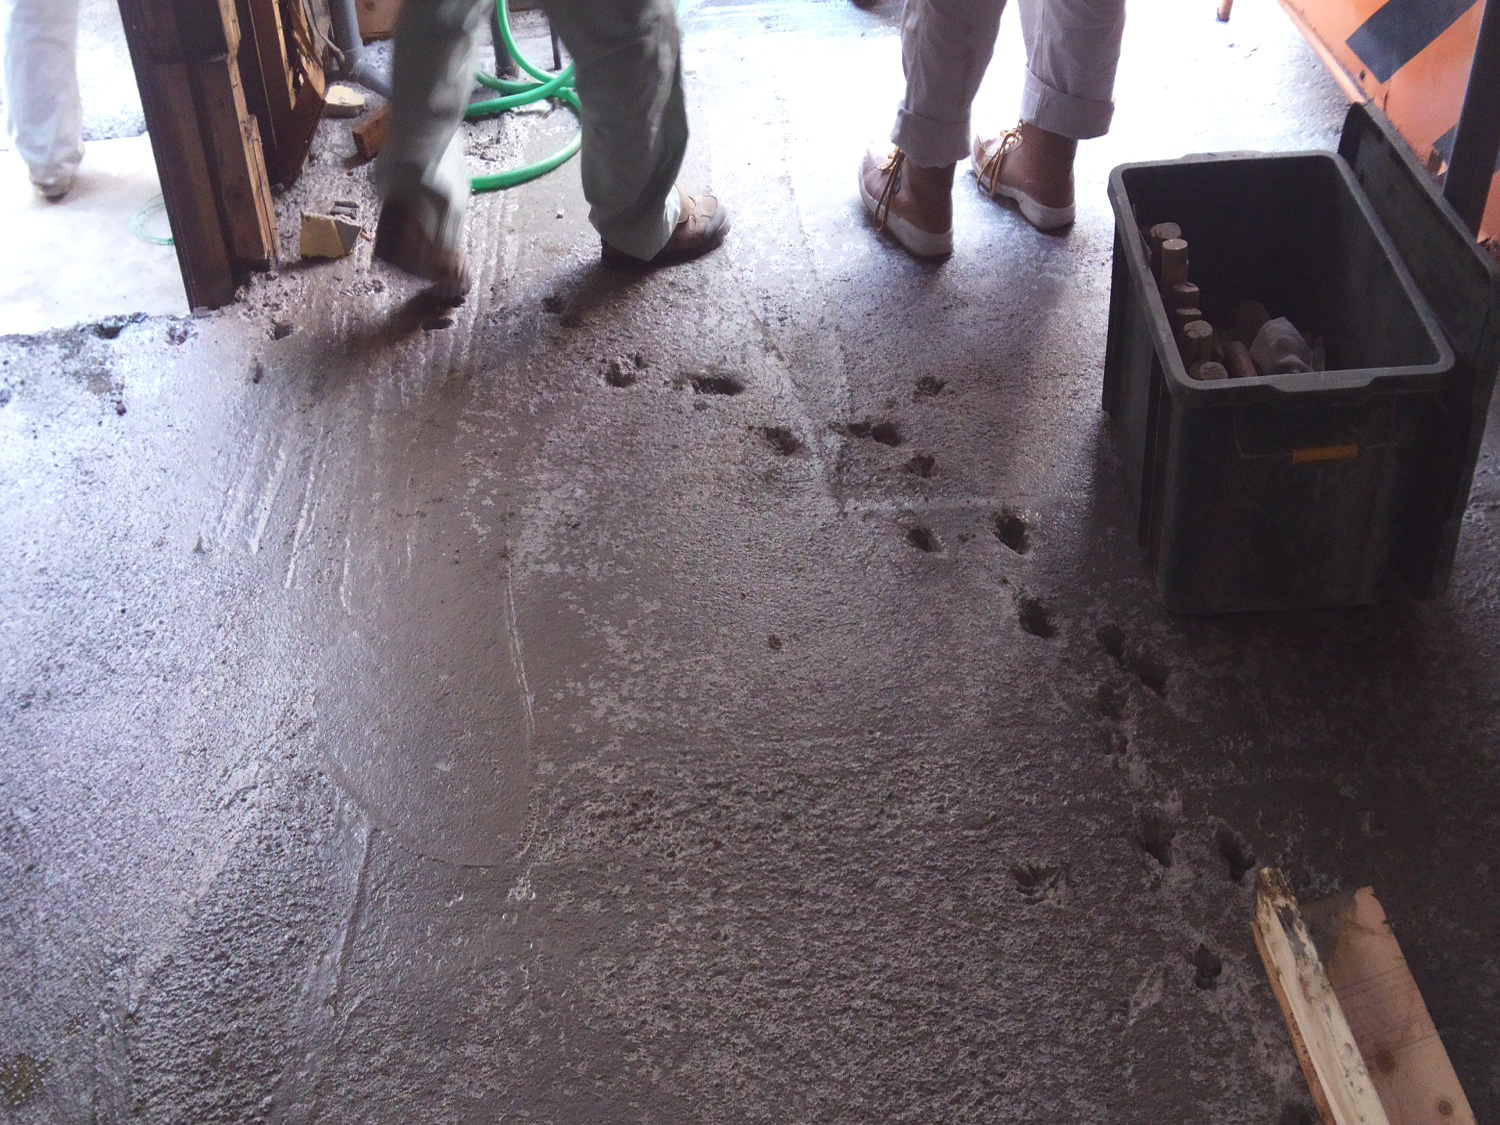 http://raysman3.net/blog/uploads/2013_6_22_06.jpg